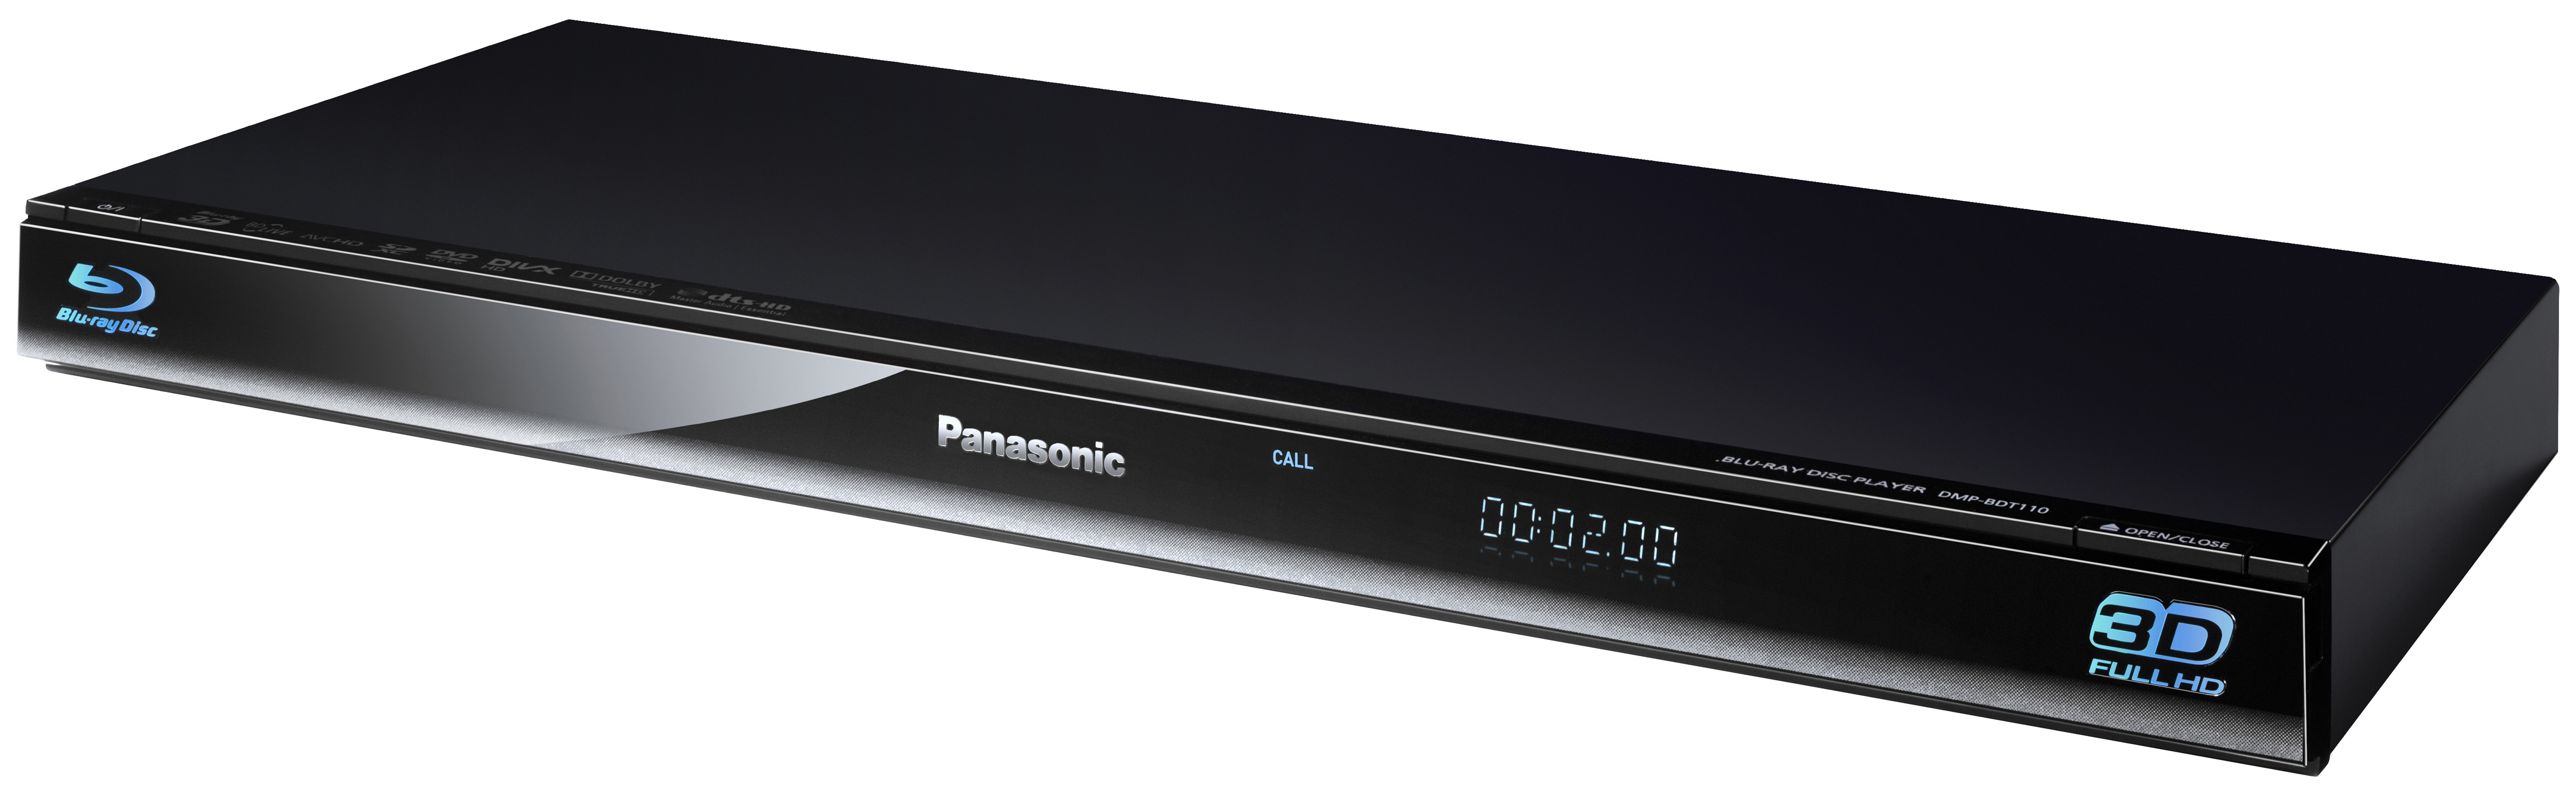 Panasonic dmp bdt110eg 3d blu ray player upscaler 1080p hdmi apple